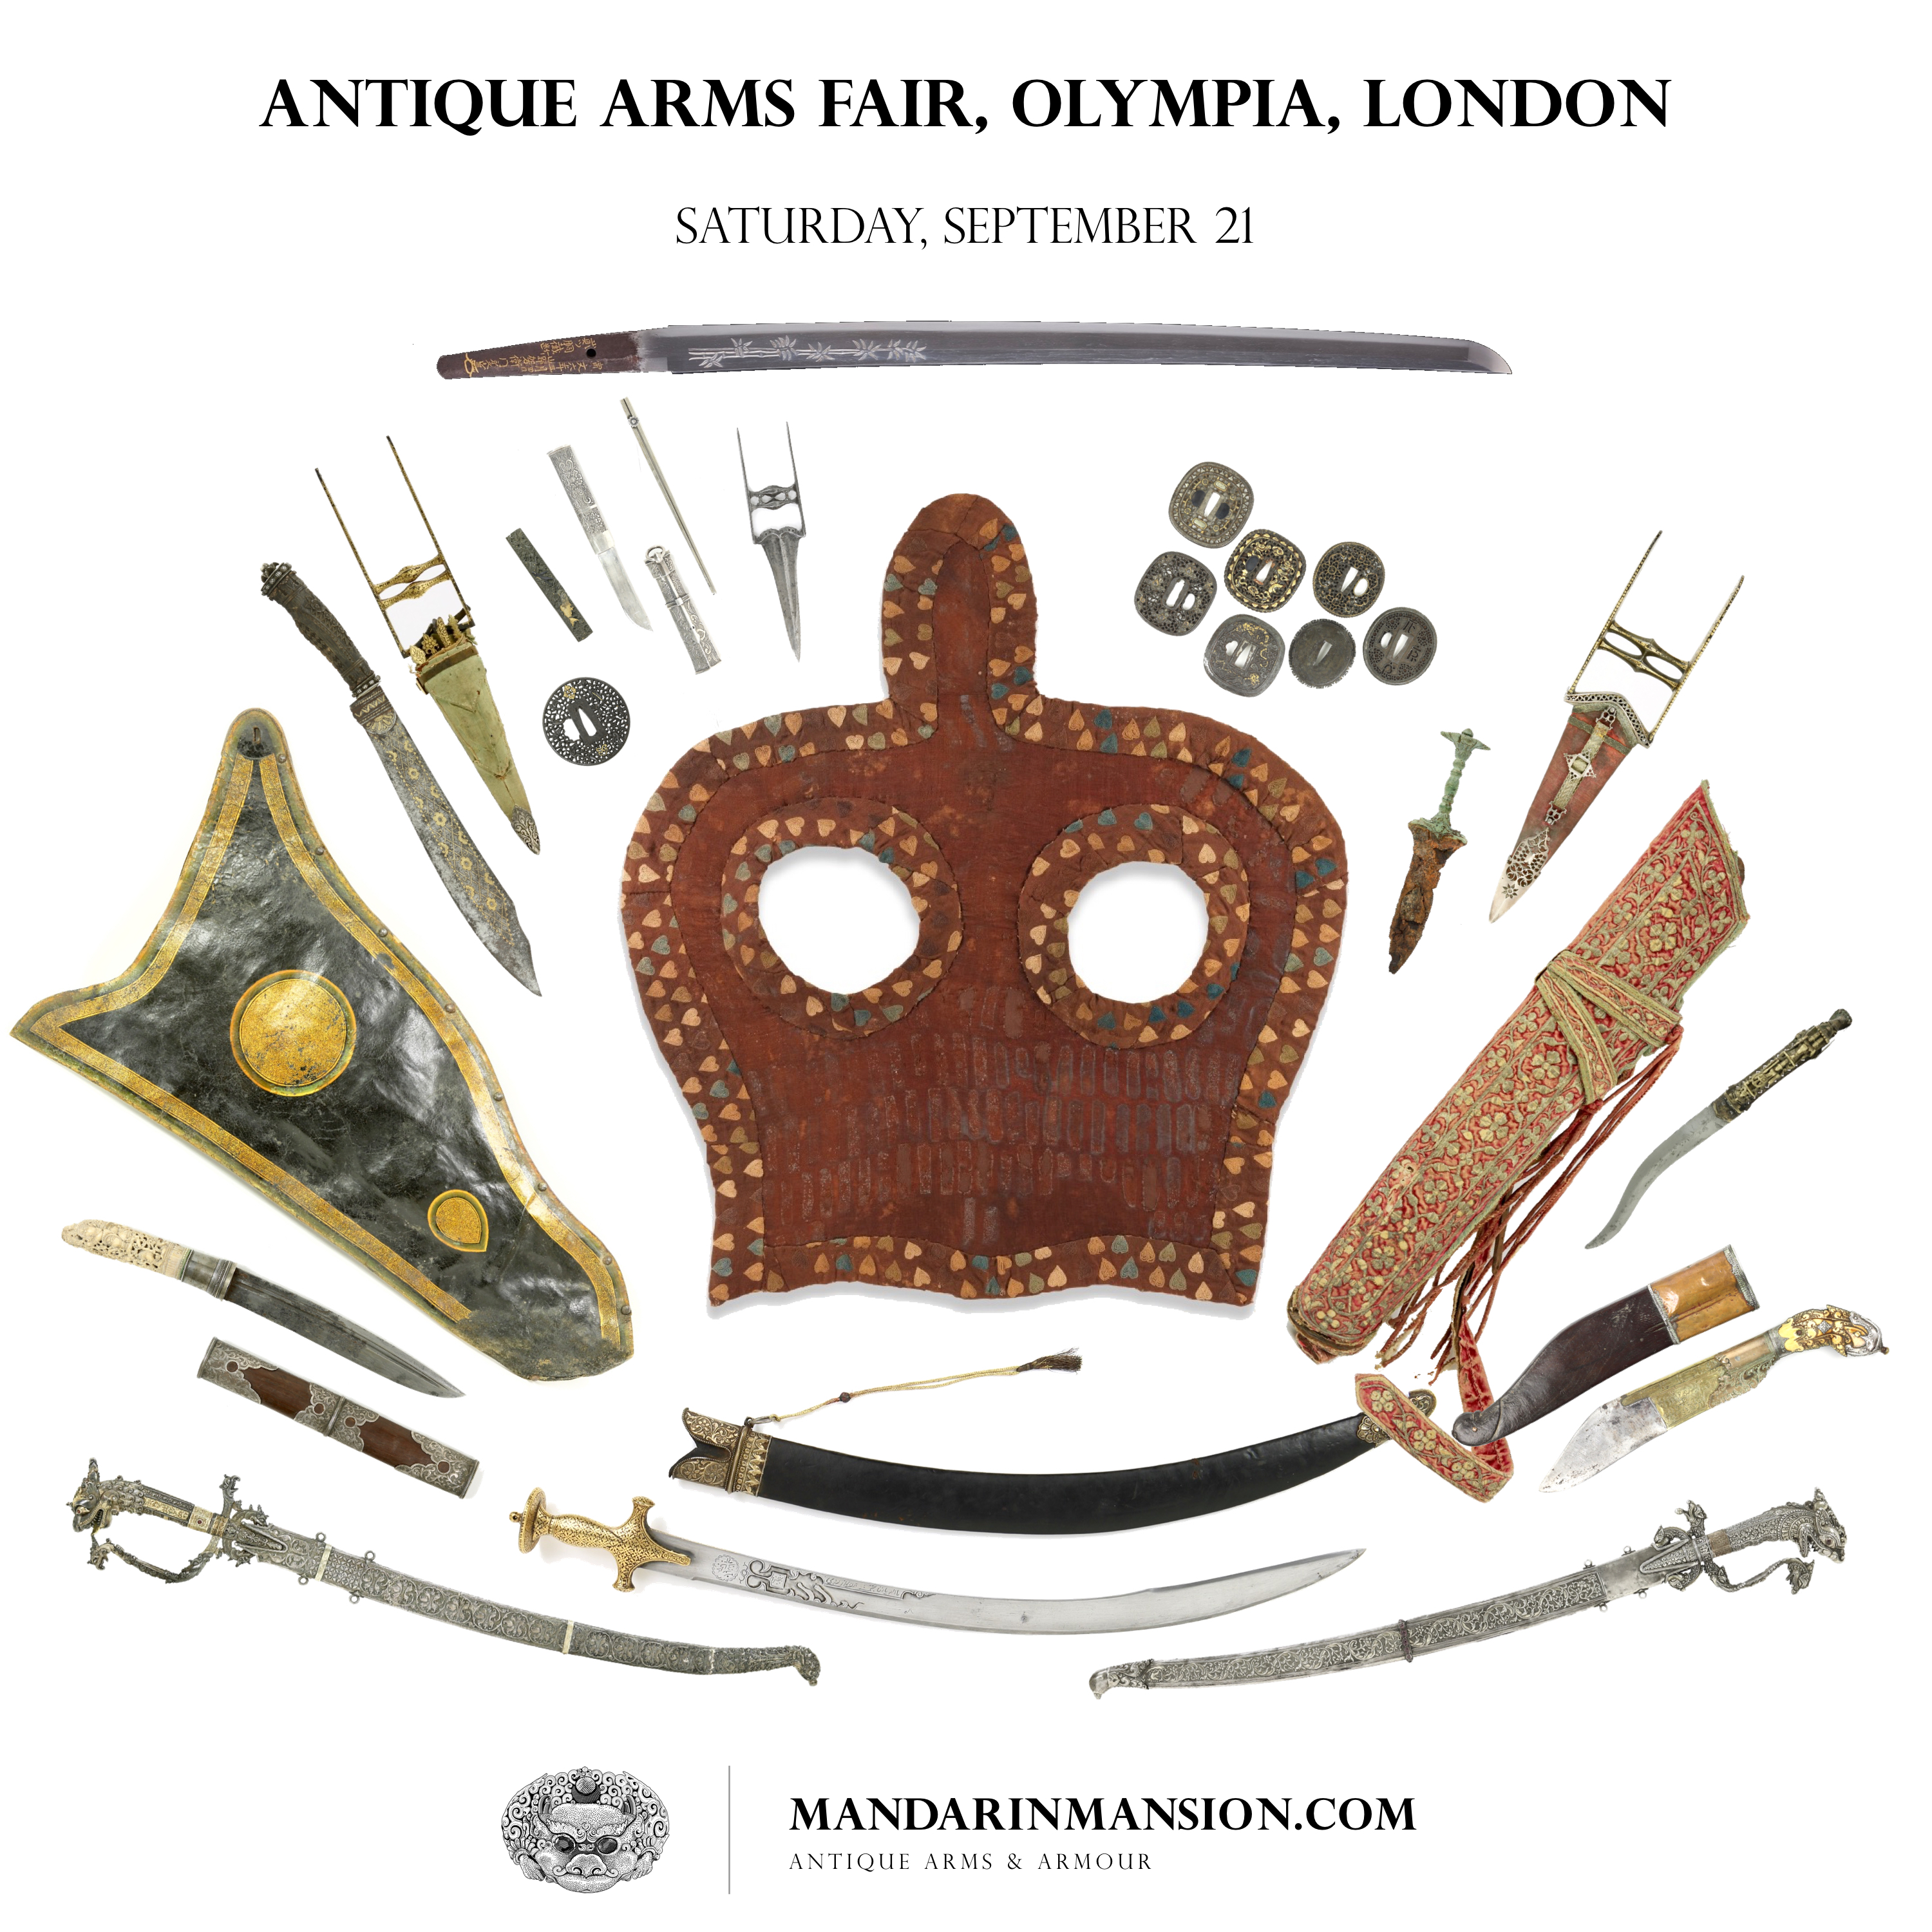 Olympia Arms Fair promotion